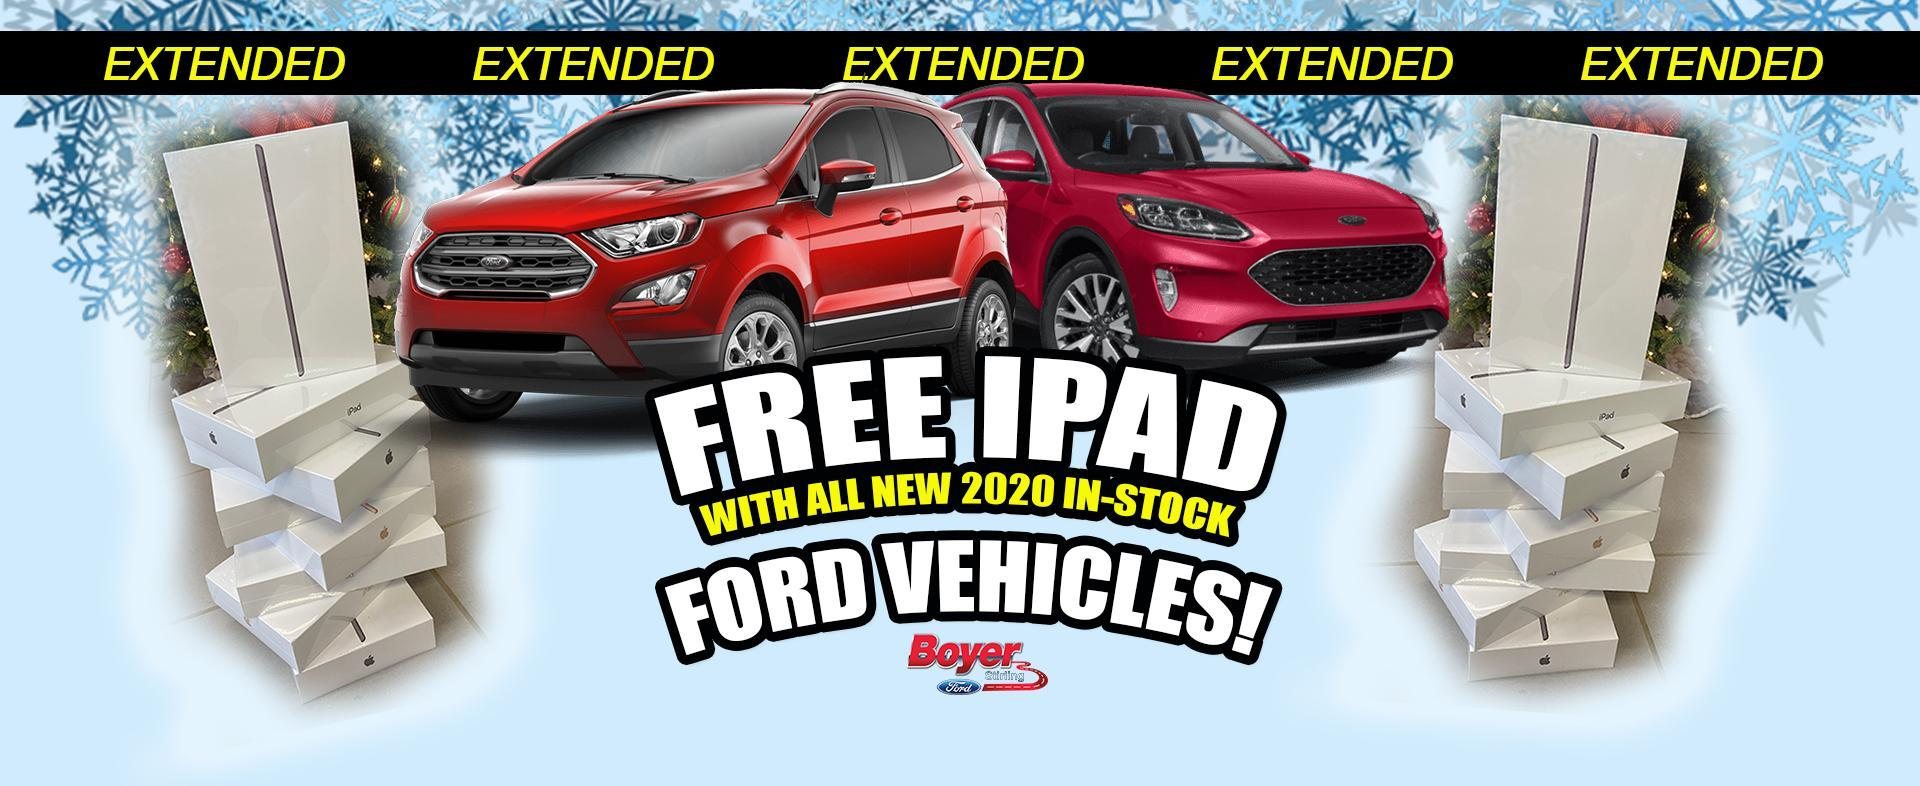 Free iPad with any Purchase at Boyer Ford Stirling